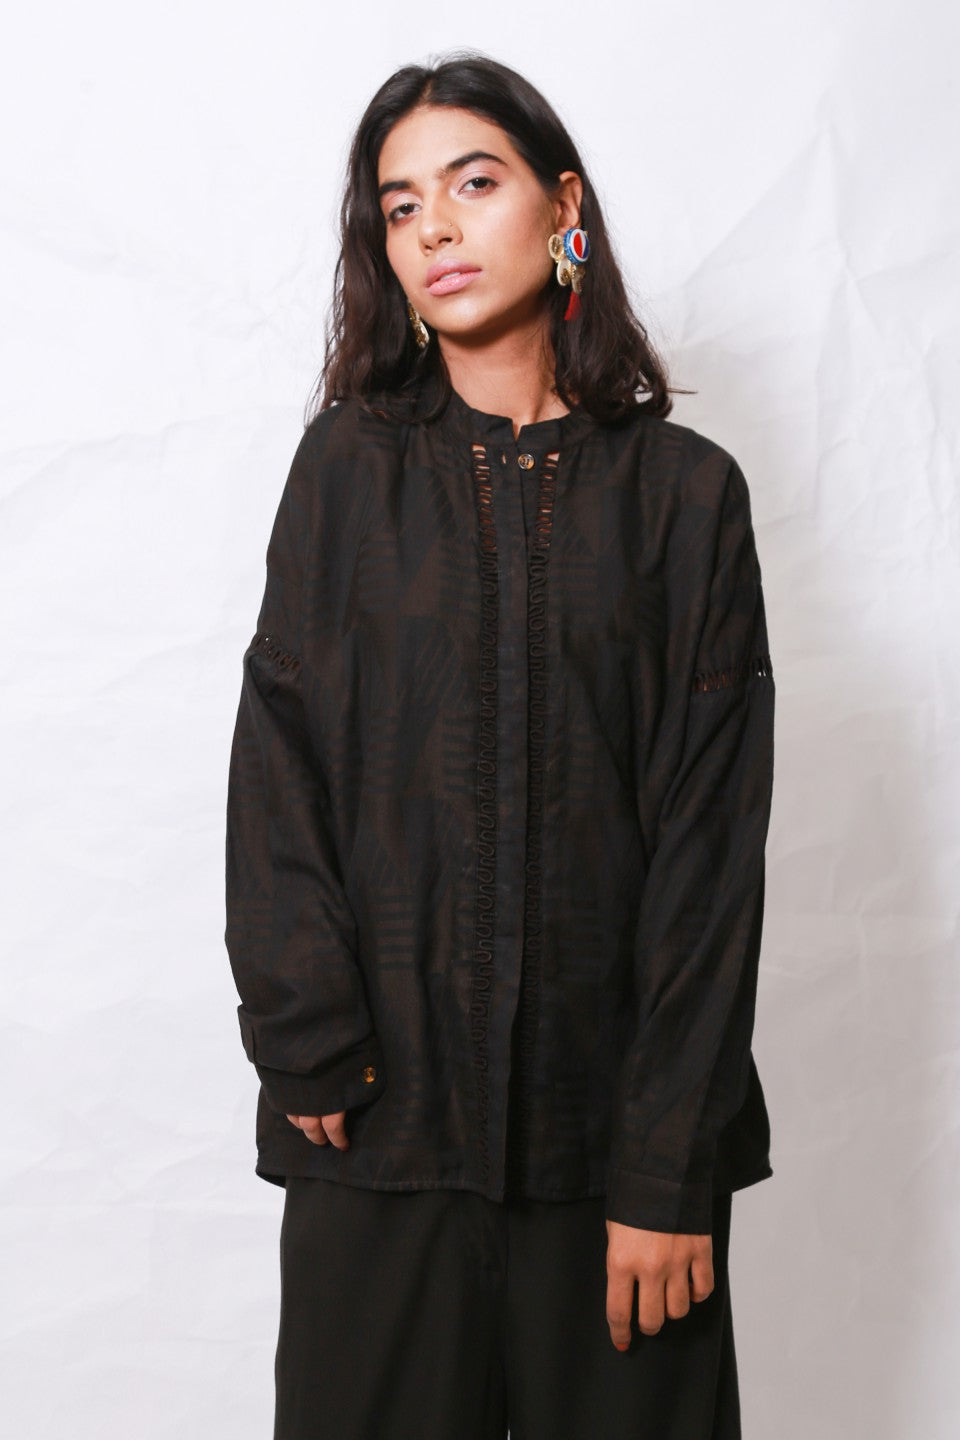 Generation - Black Coastal Living Top